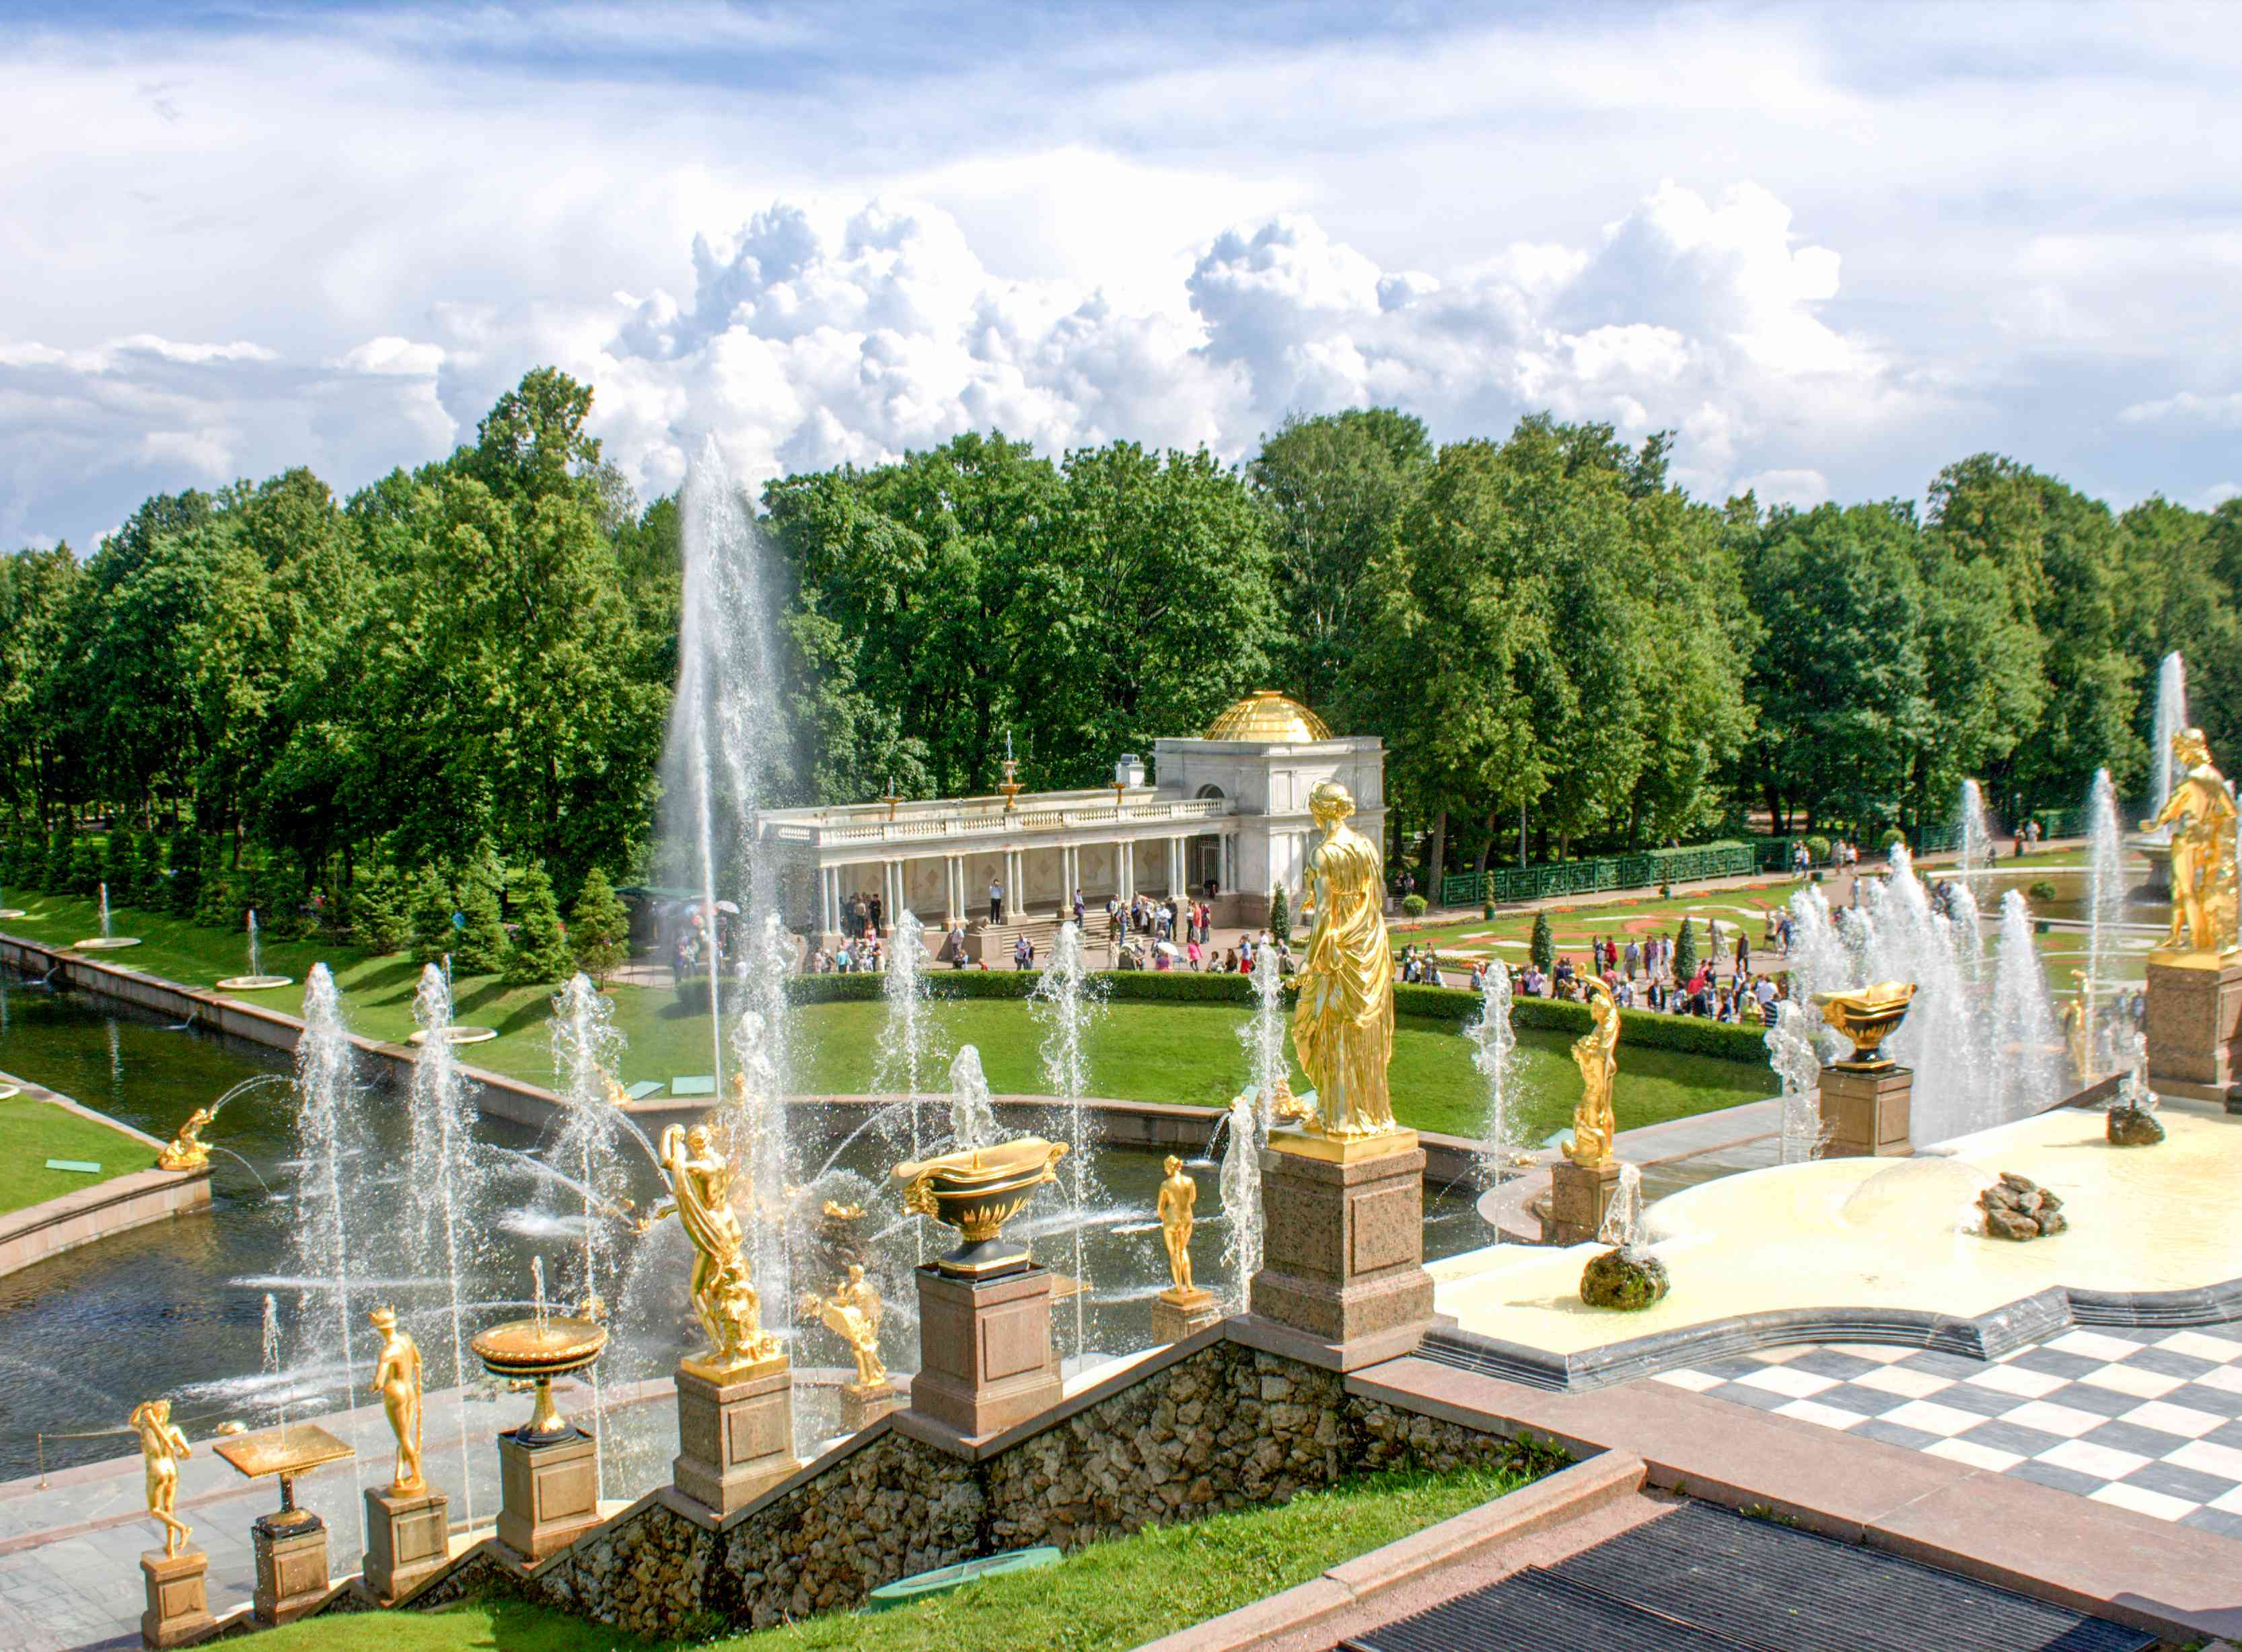 View of the fountains and golden statues at Peterhof